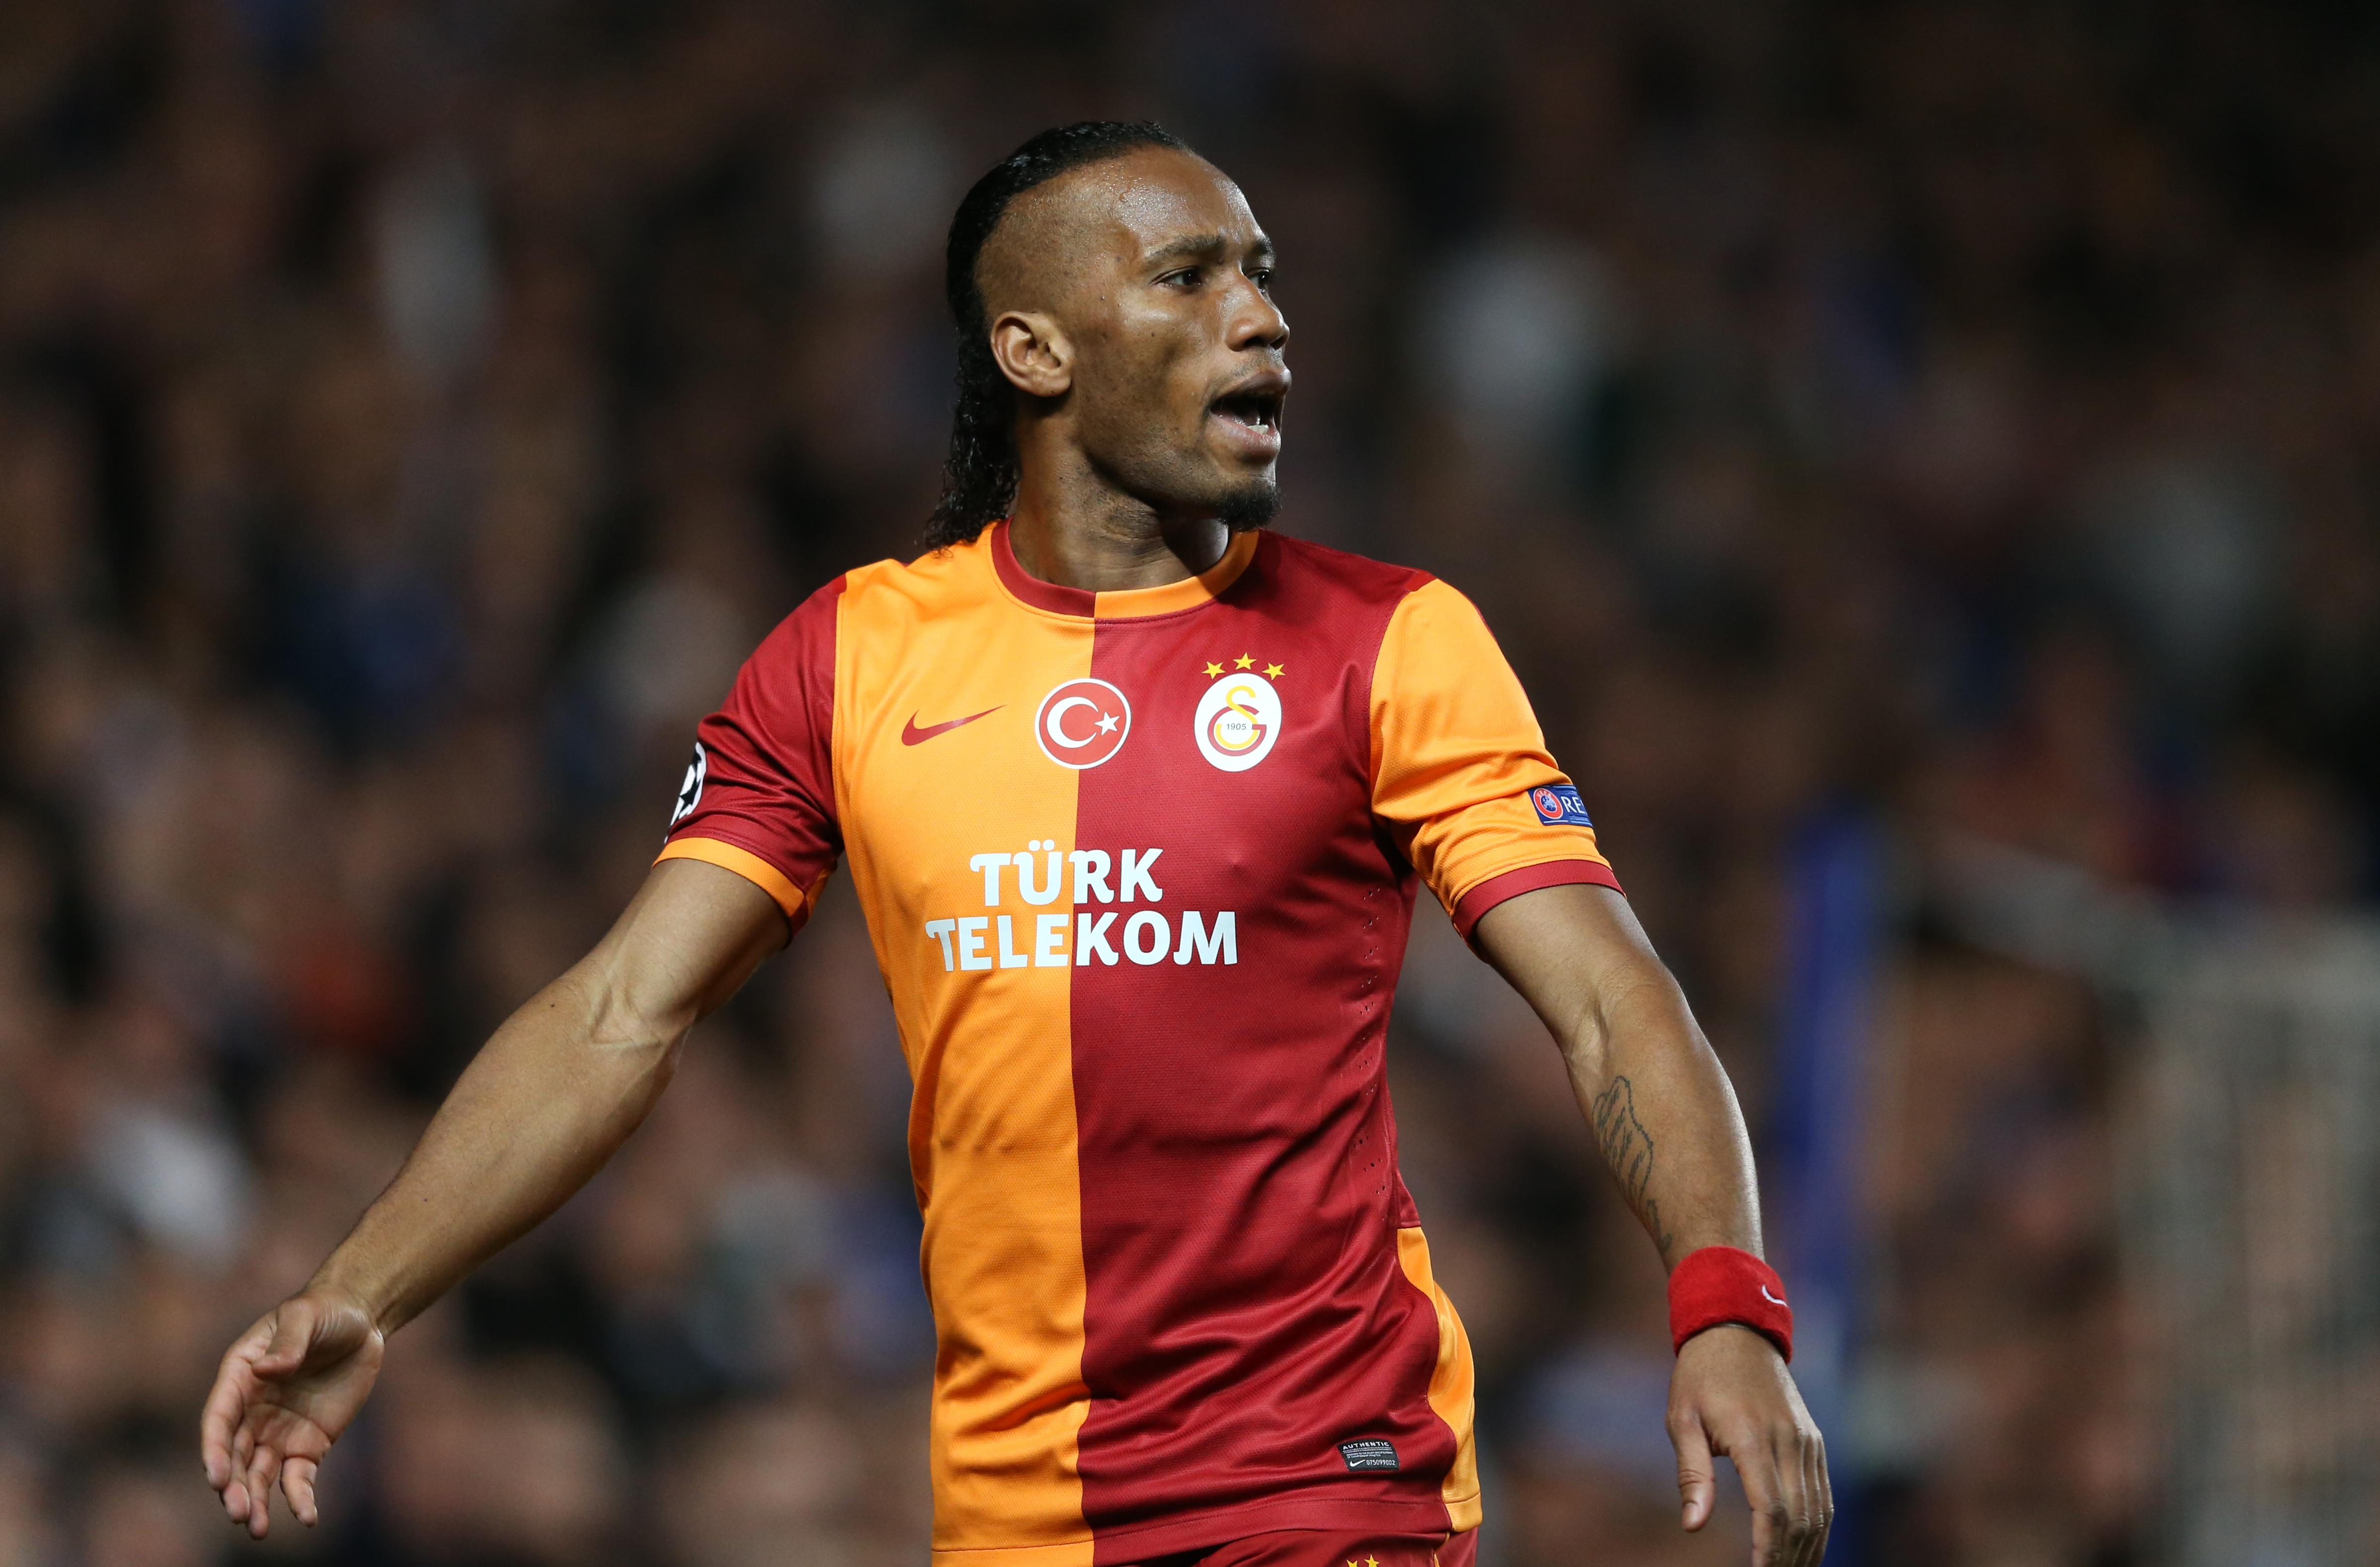 We're not calling Drogba a flop, by the way